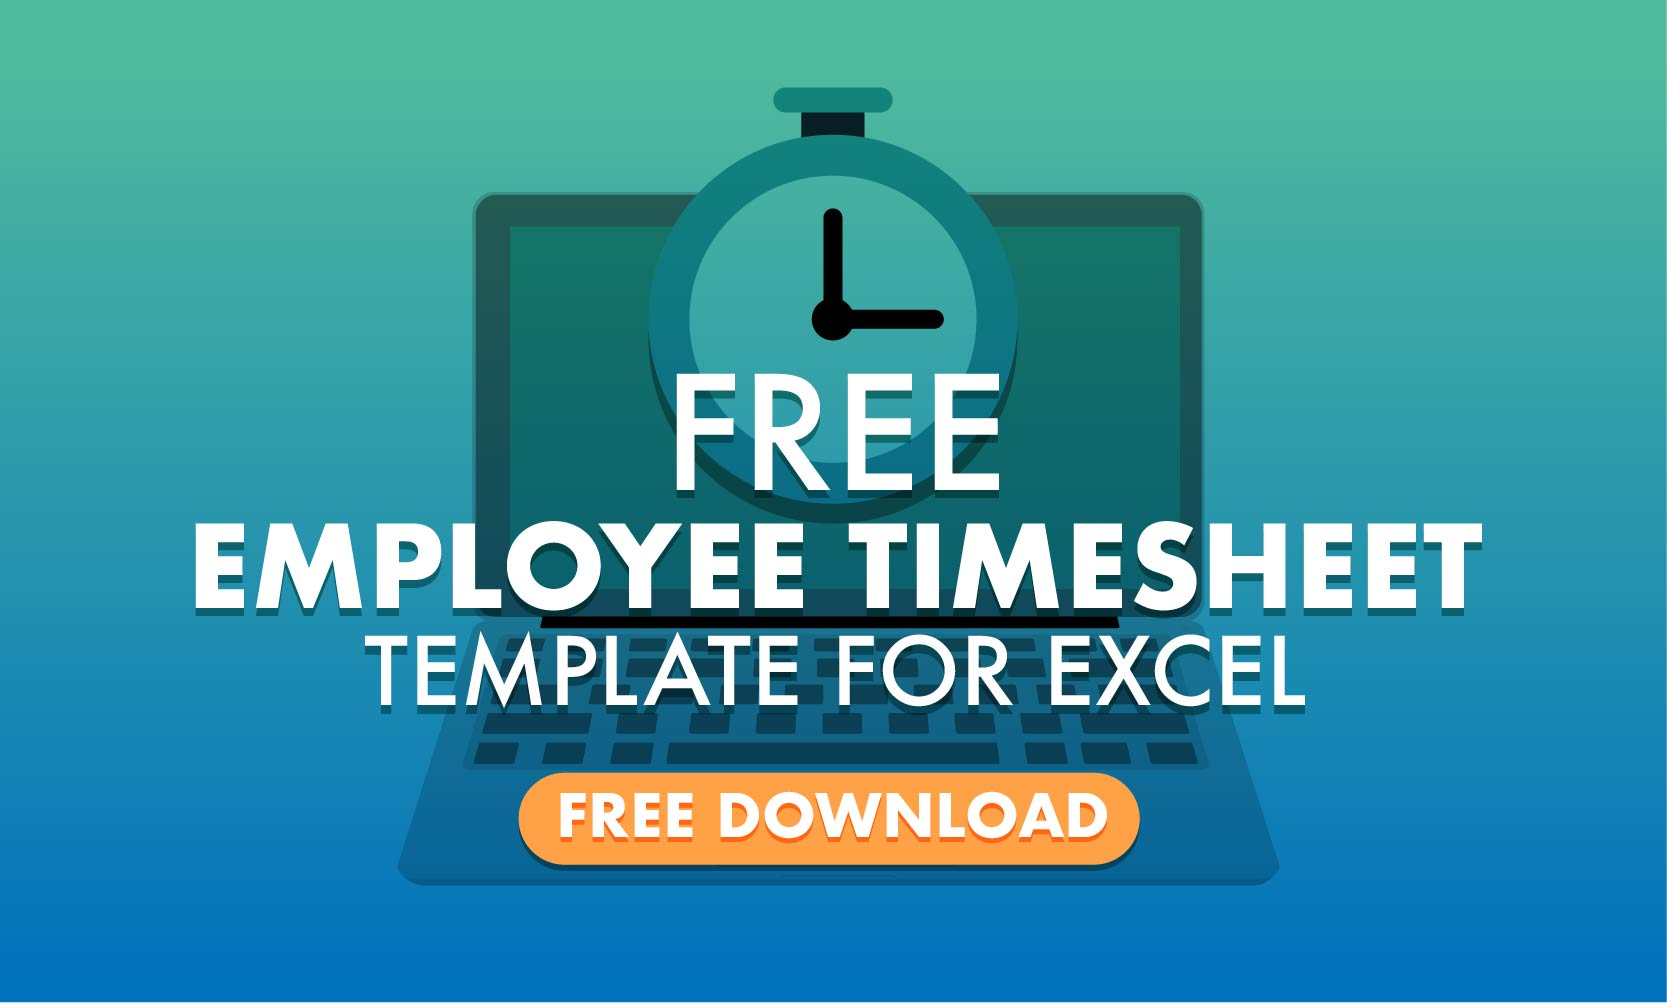 Free Employee Timesheet Template for Excel - When I Work